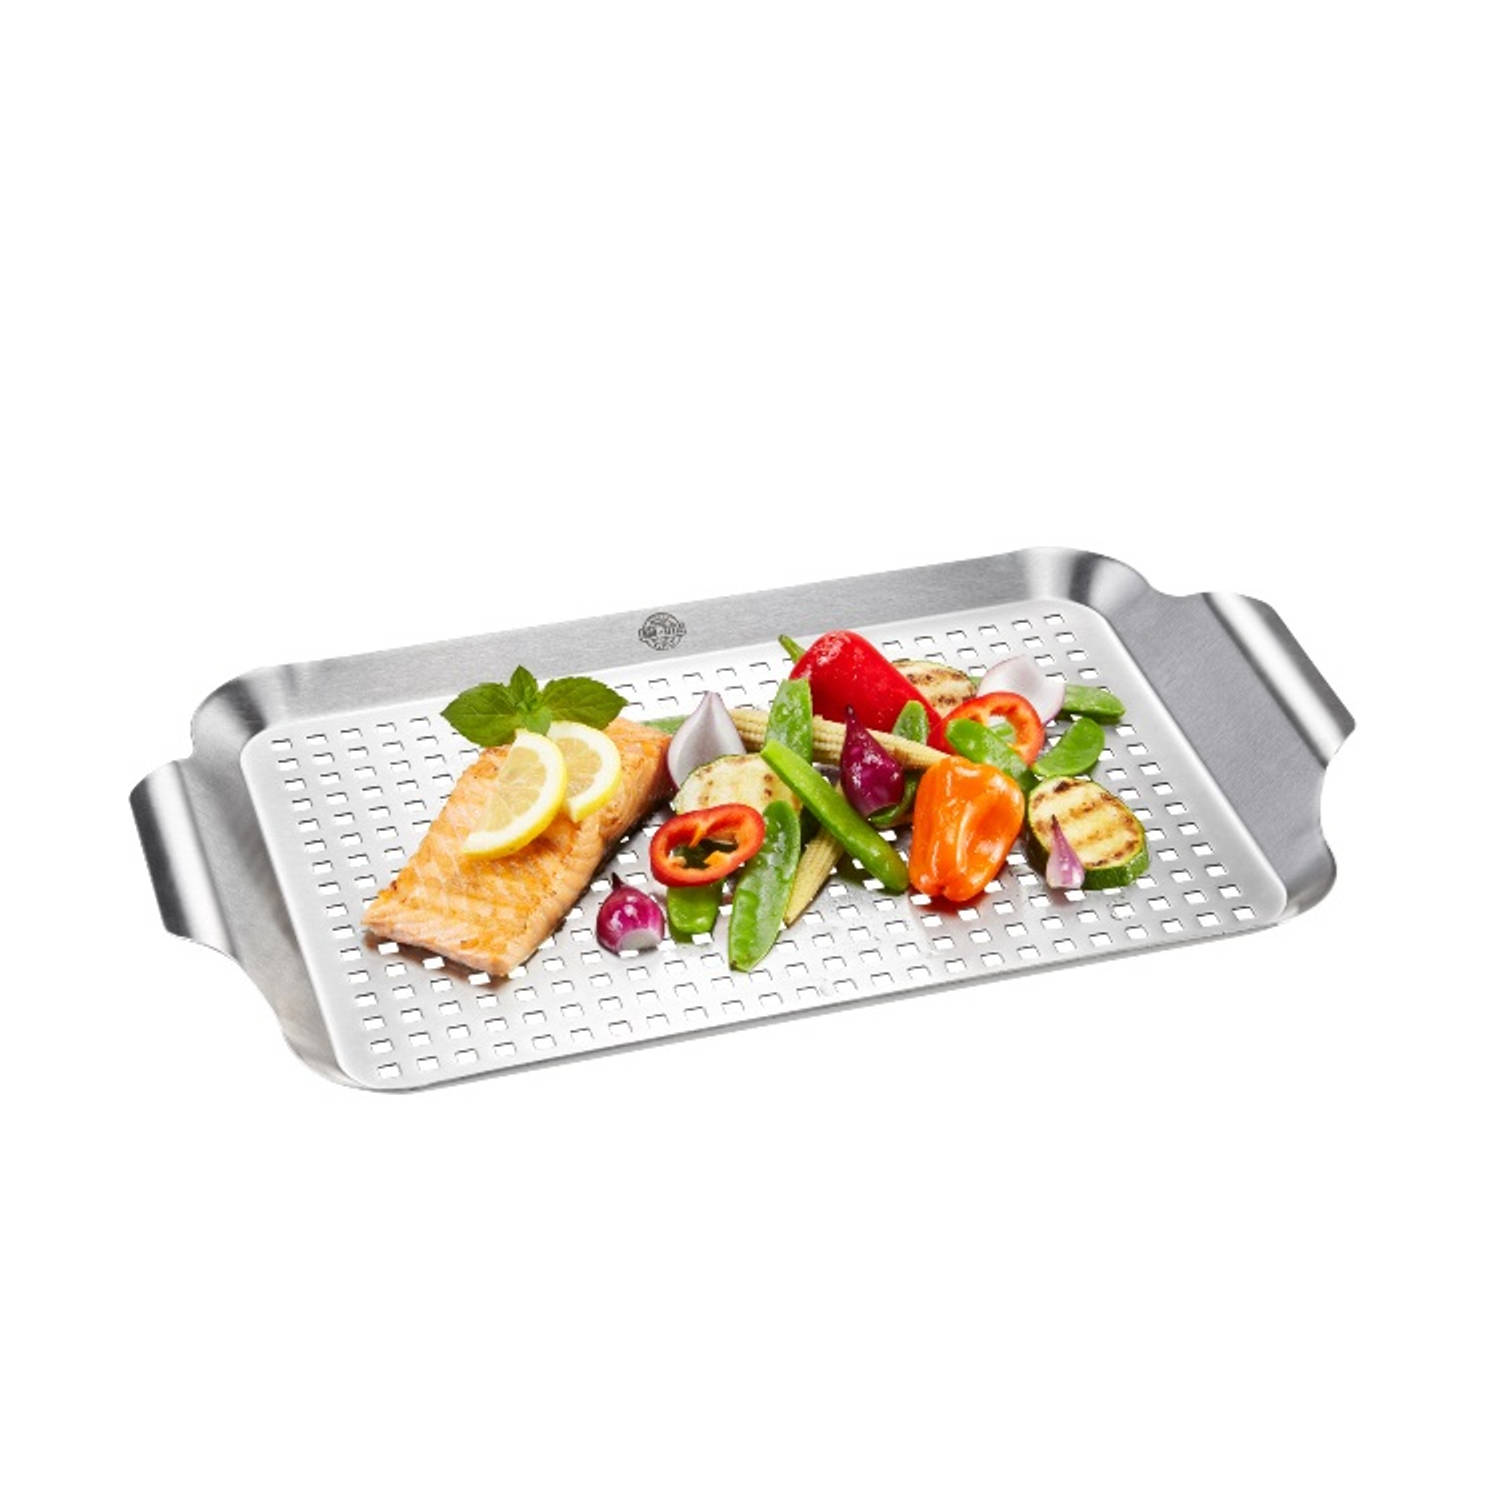 Grillpan Barbecue - 43 cm x 25 cm - Gefu